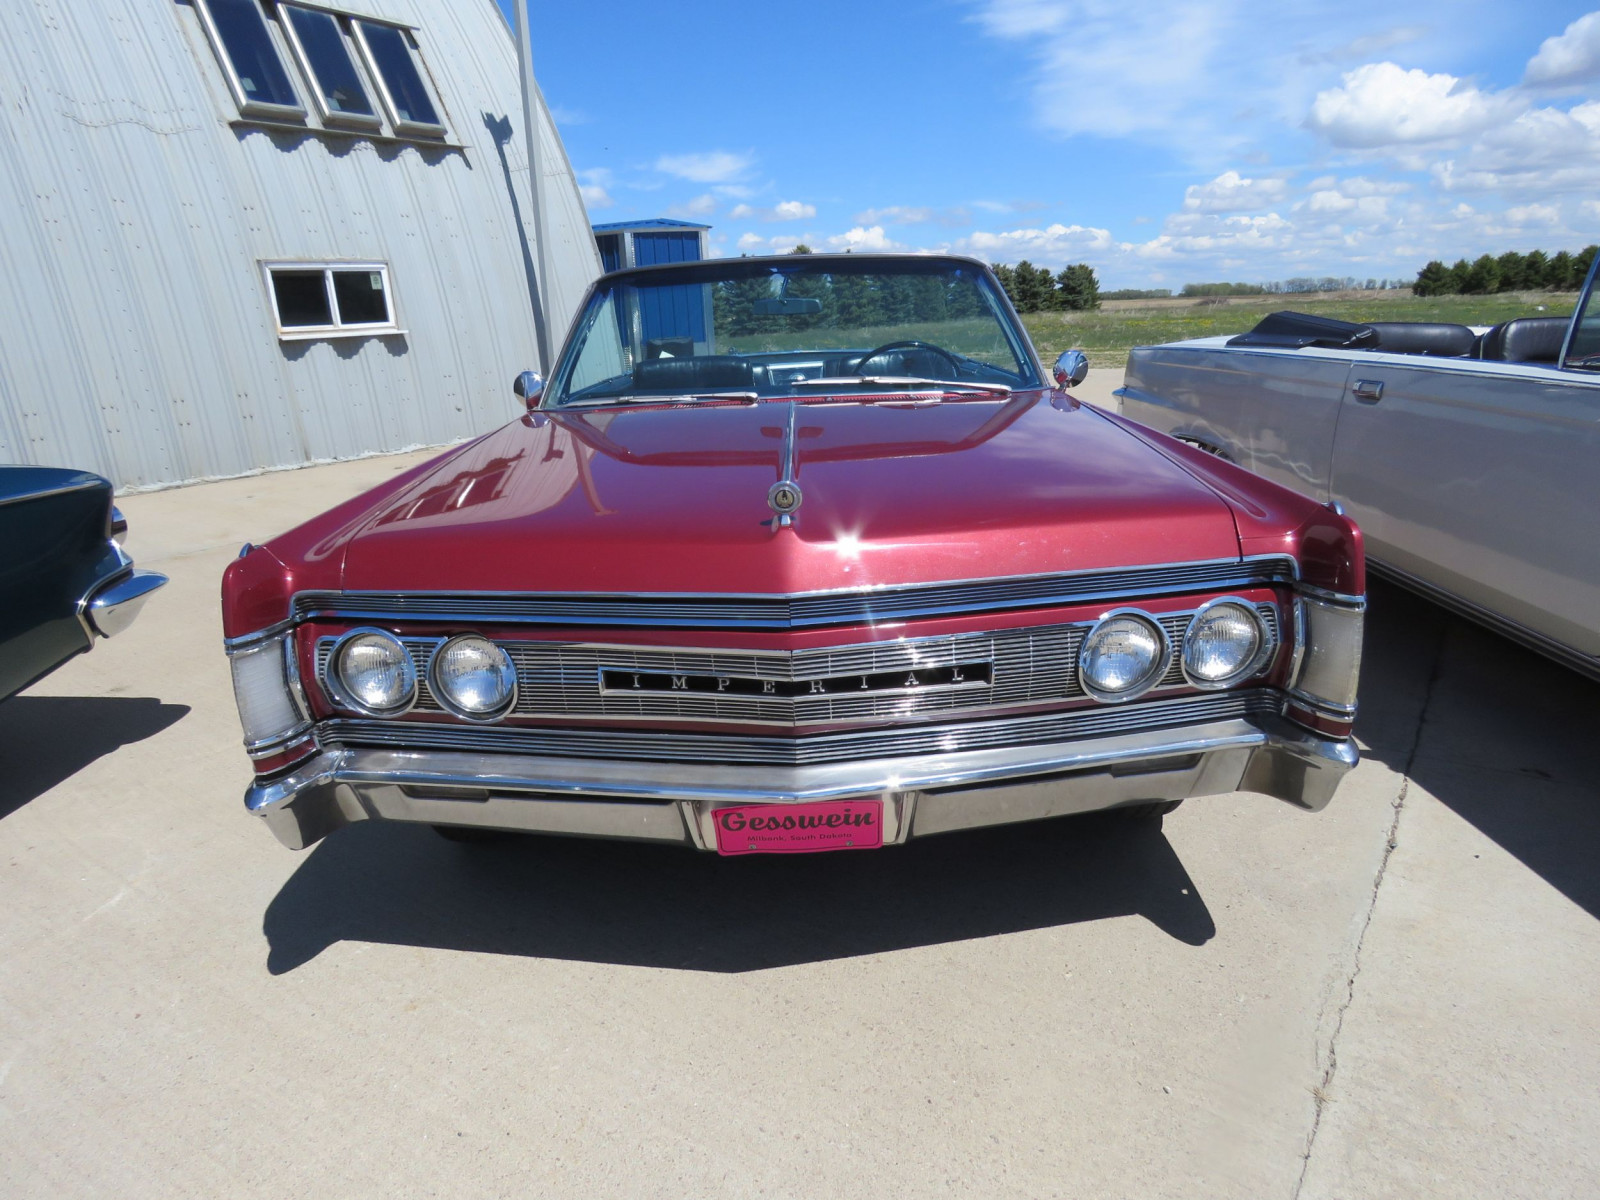 1967 Chrysler Imperial Convertible - Image 2